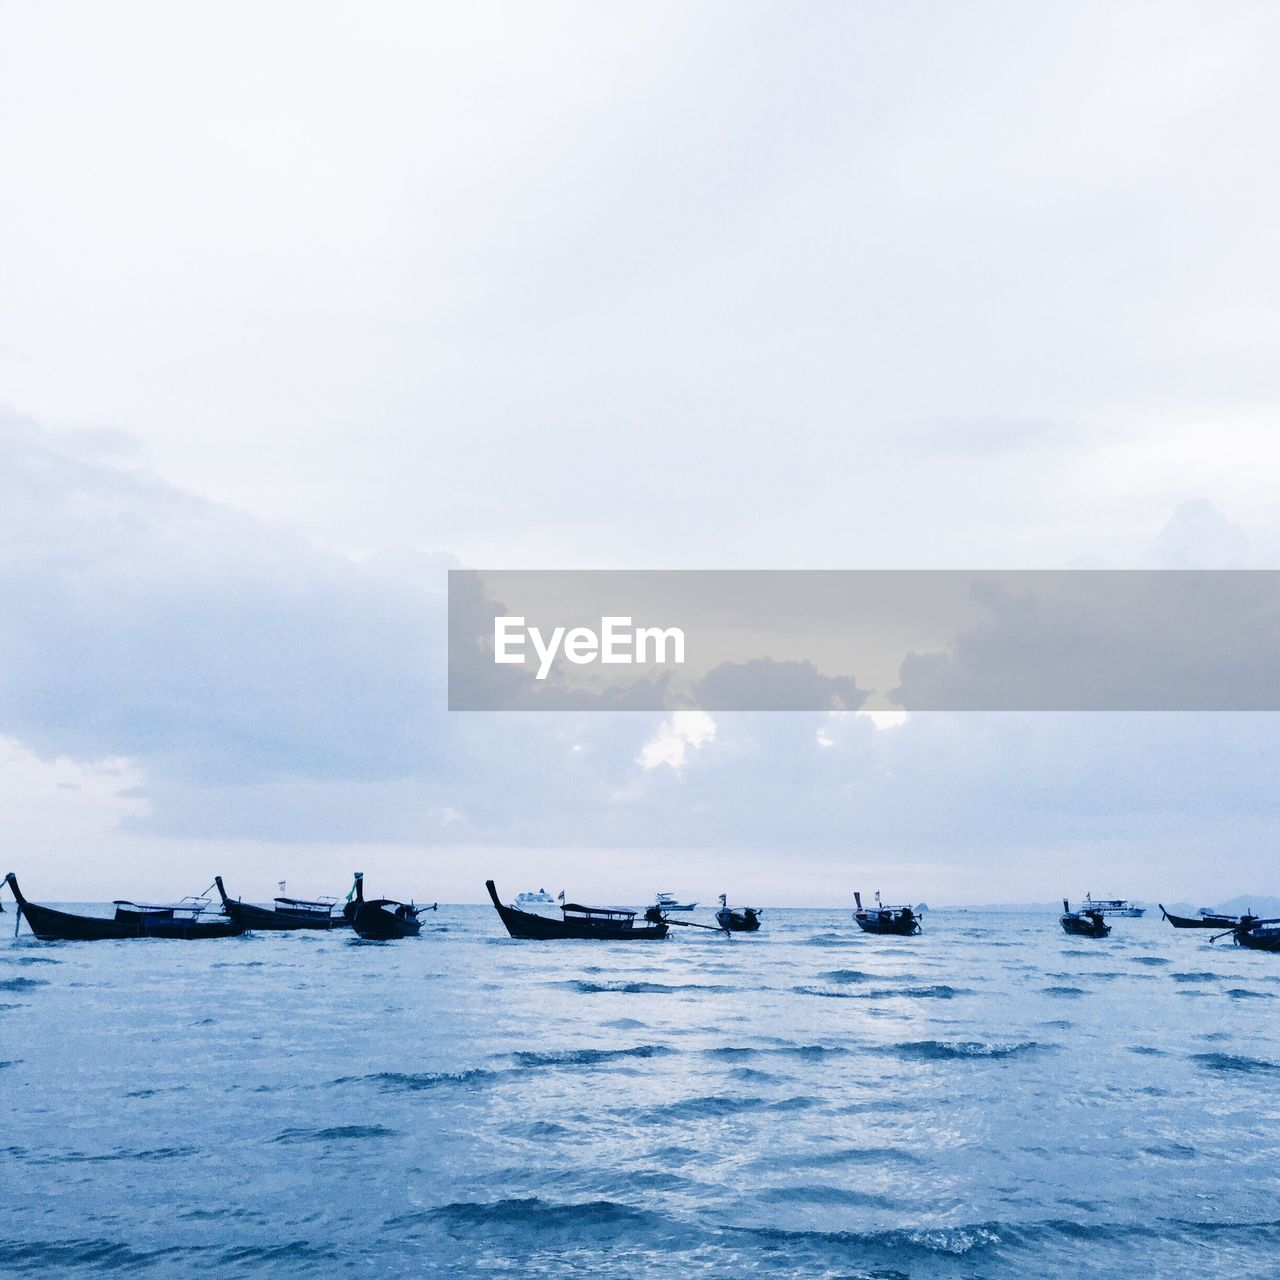 SILHOUETTE BOATS IN SEA AGAINST SKY